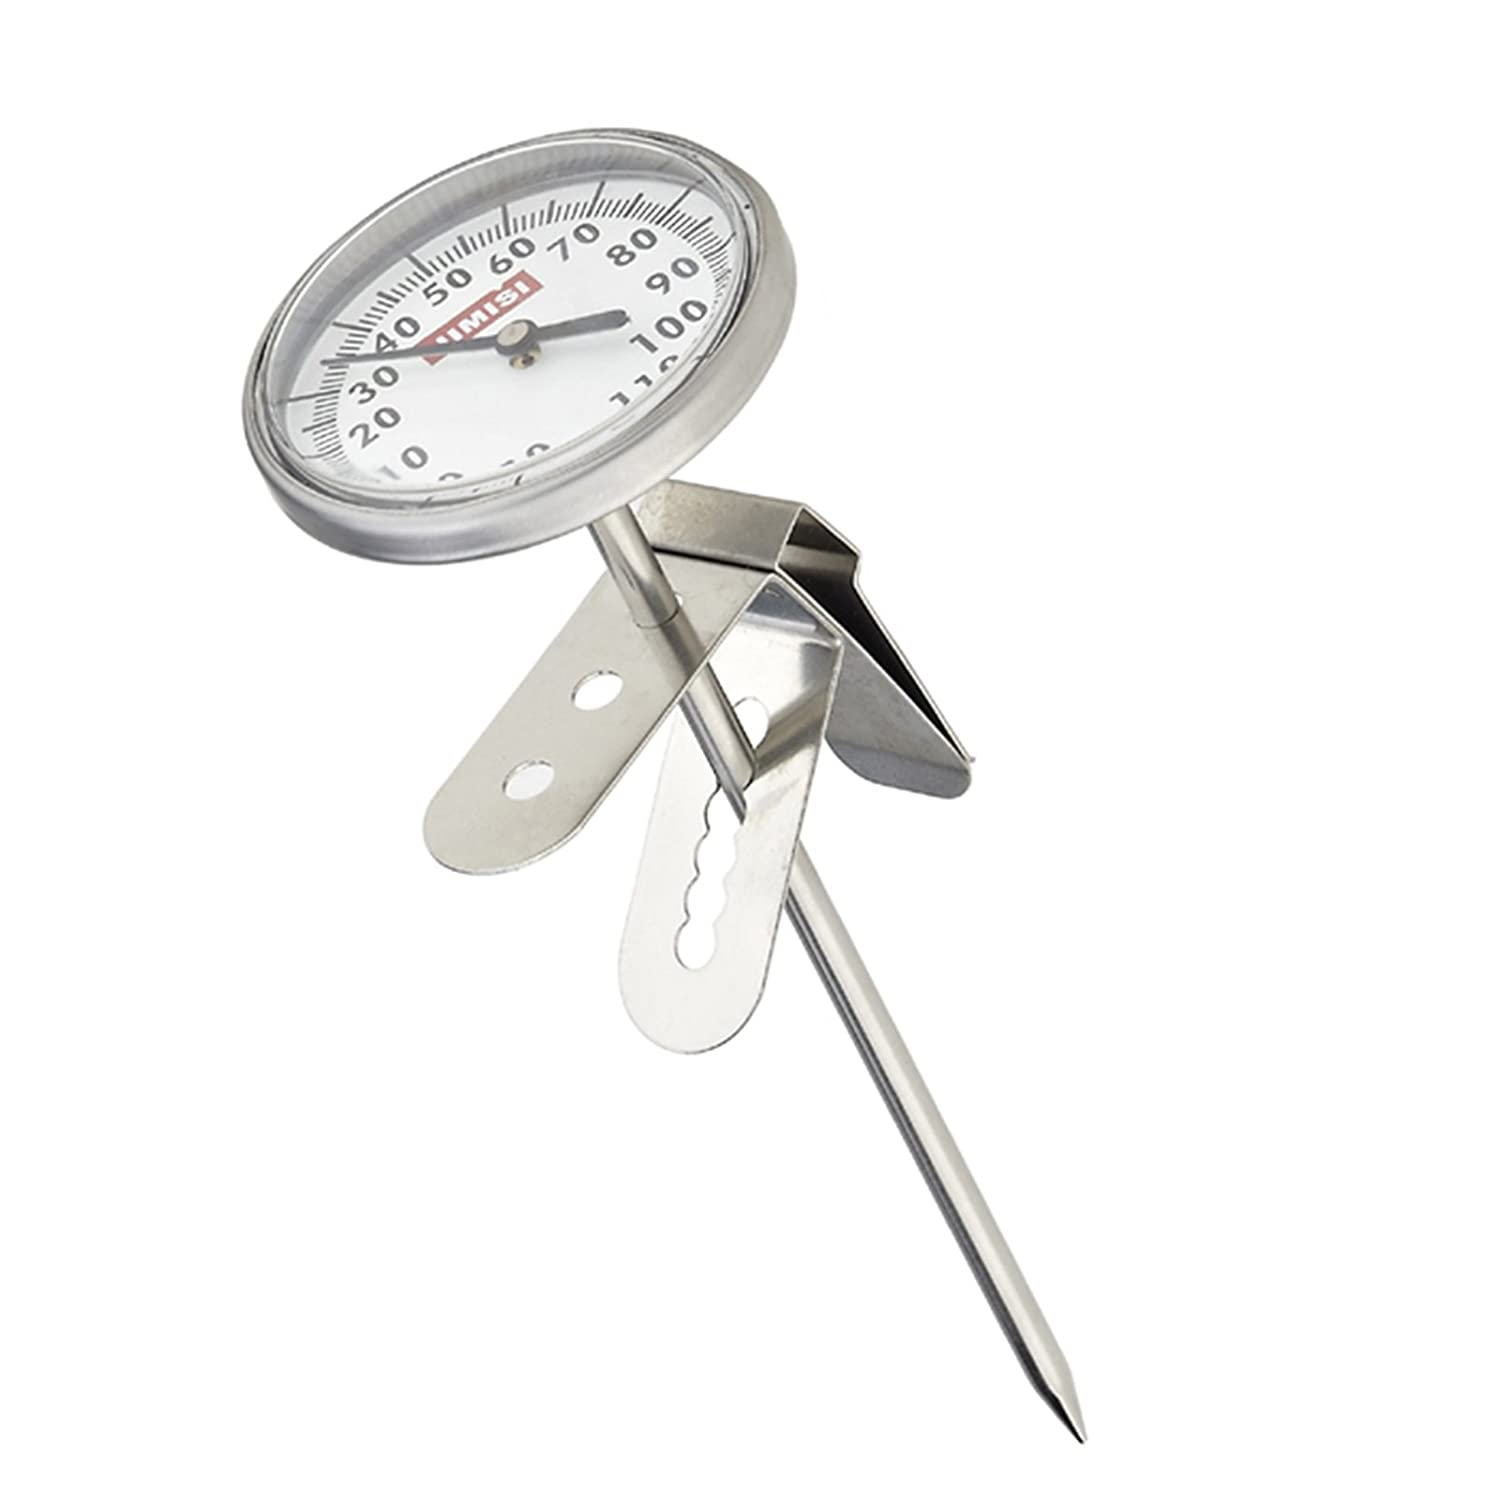 Honeyhome Stainless Steel Milk Frothing Thermometer 0-120℃ 20cm